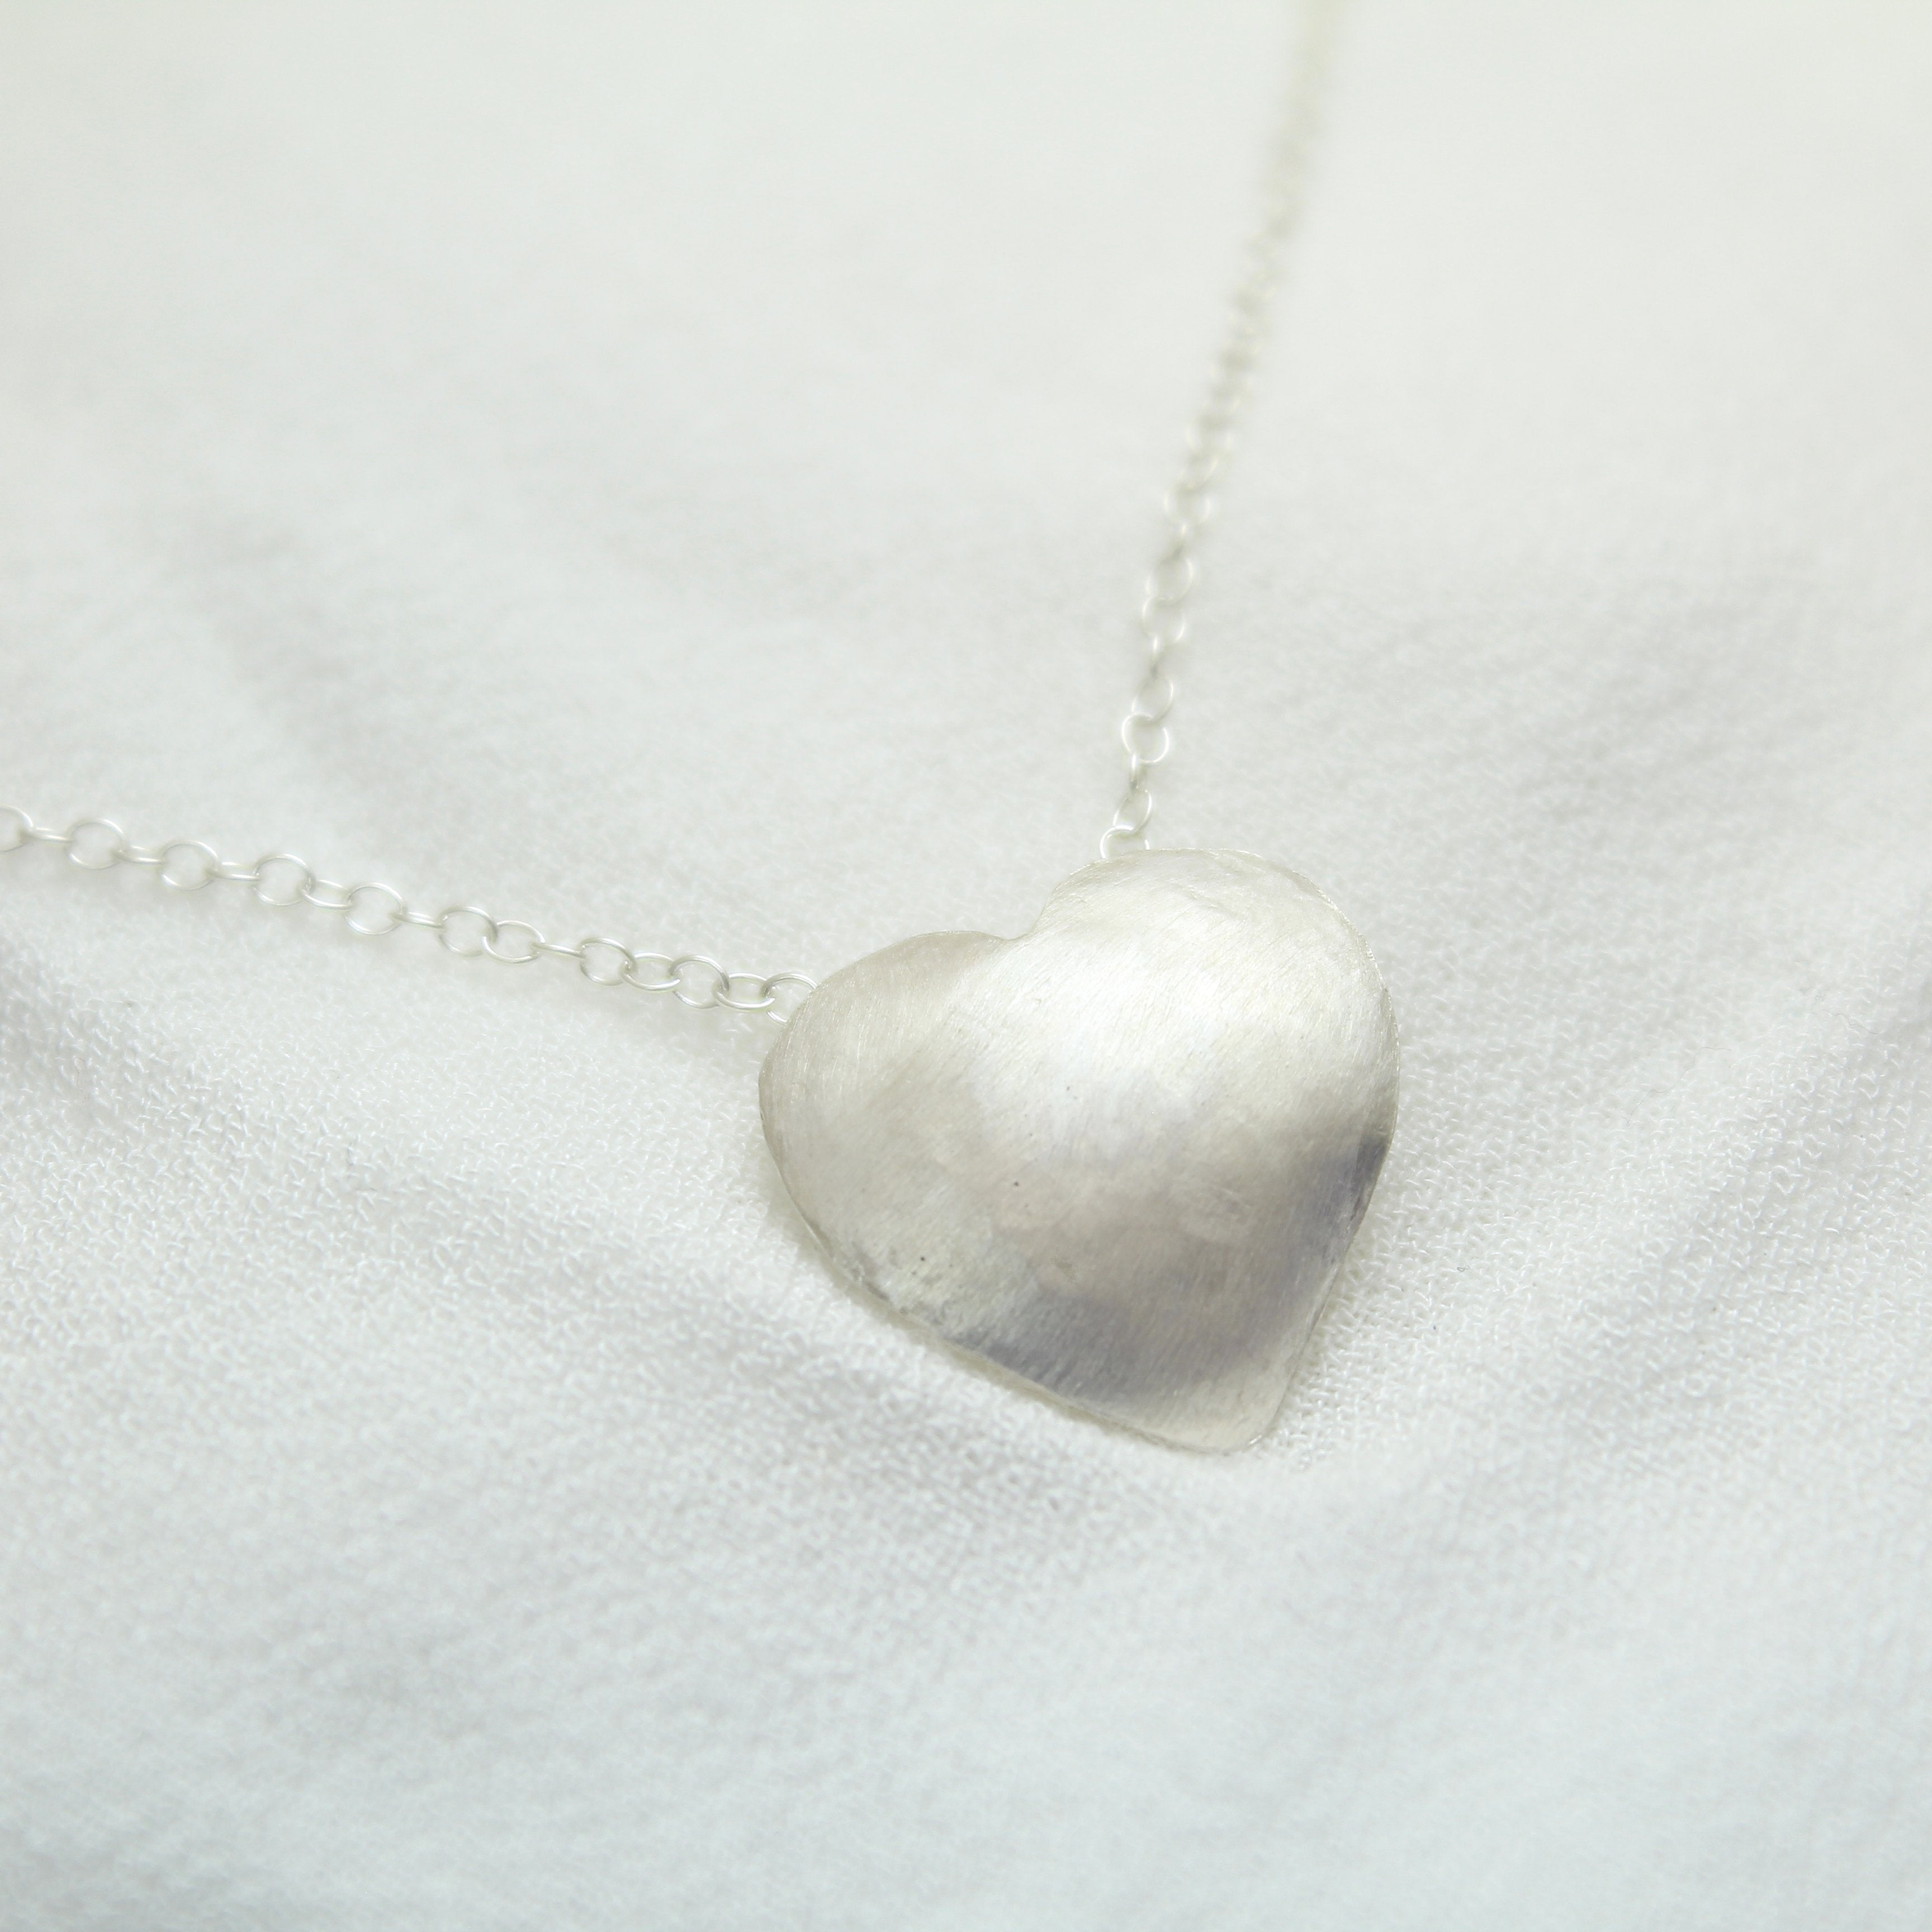 Heart Silver Necklace - Shulamit Kanter Official Store